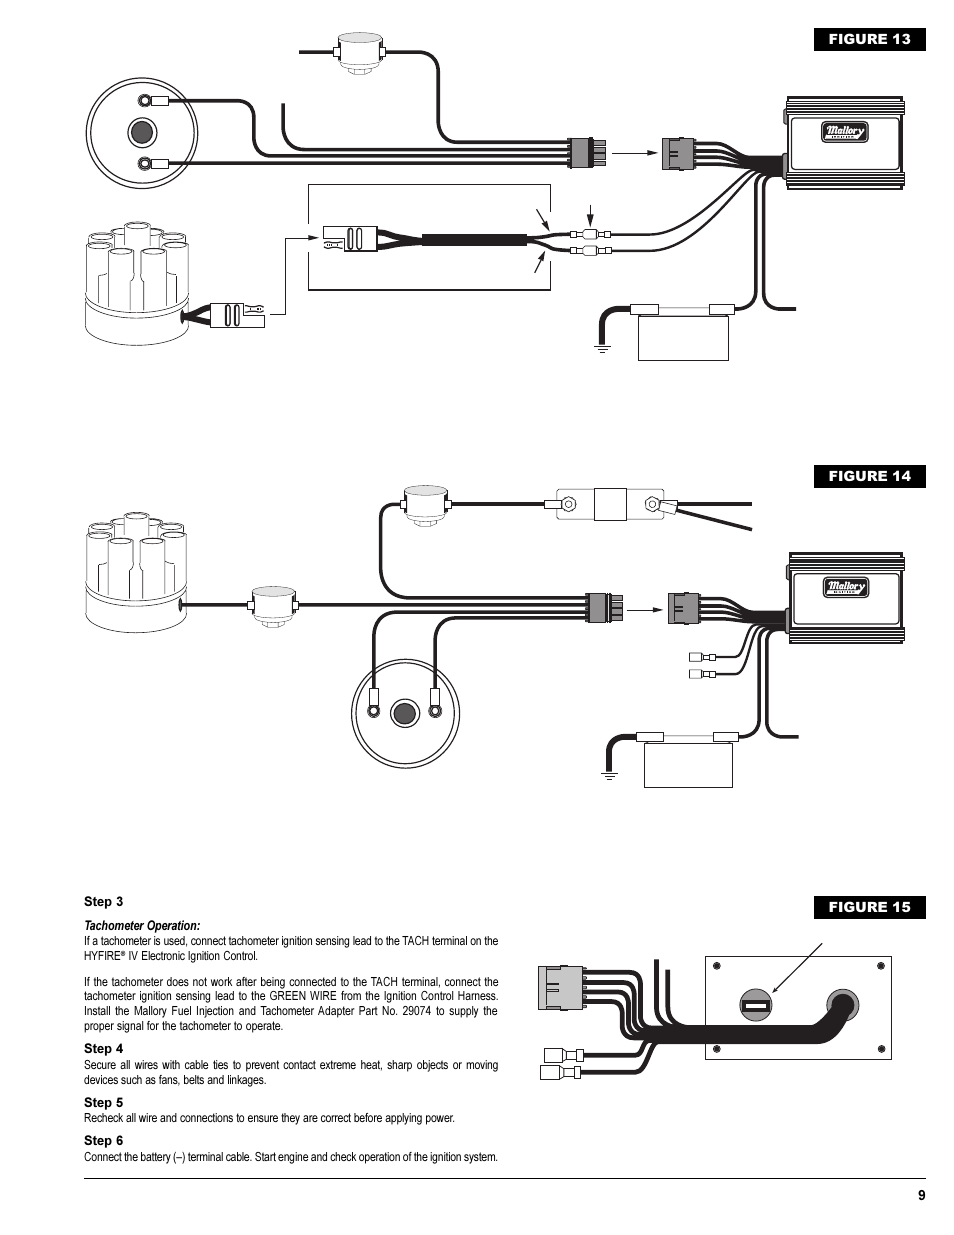 Chevy Coil Wire Diagram Distributor Wiring Diagram • 138dhw.co